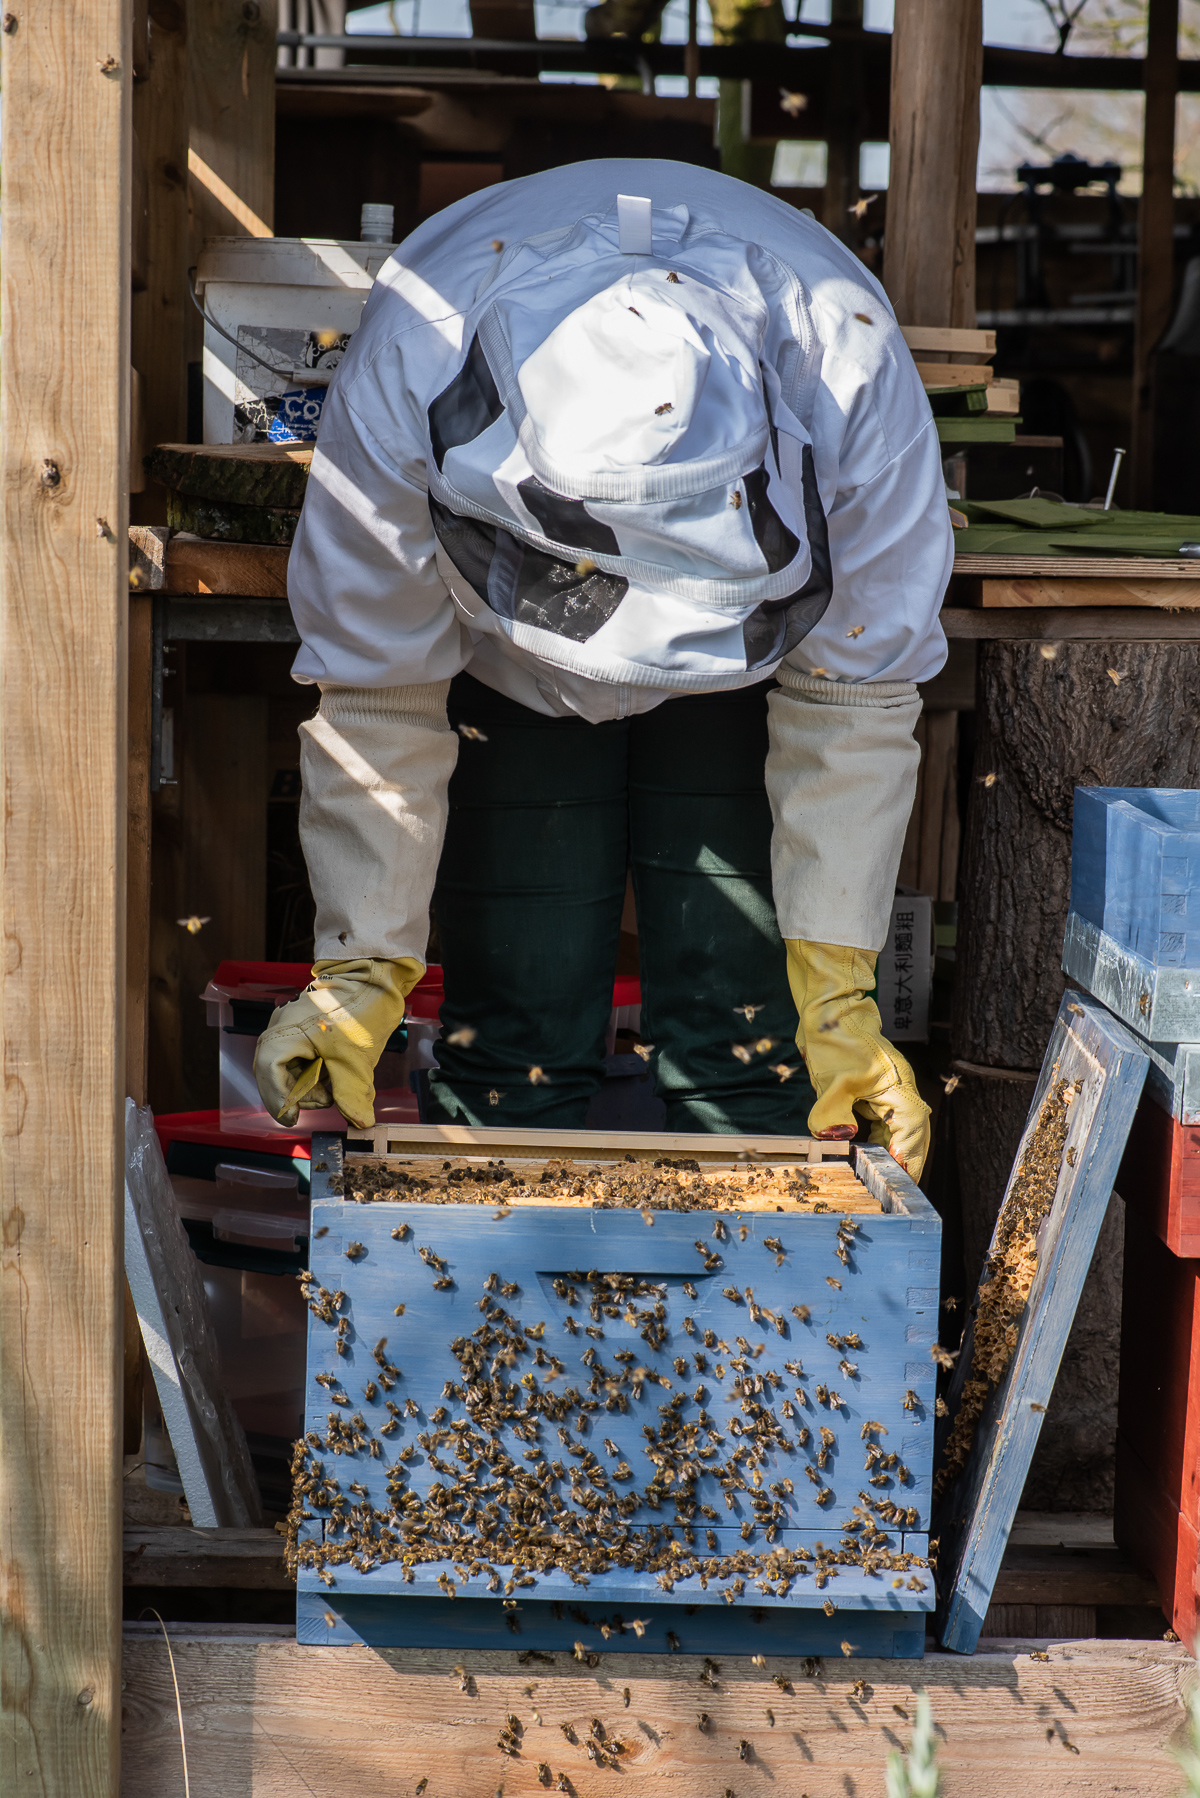 Varroa treatment for honeybees with oxalic acid